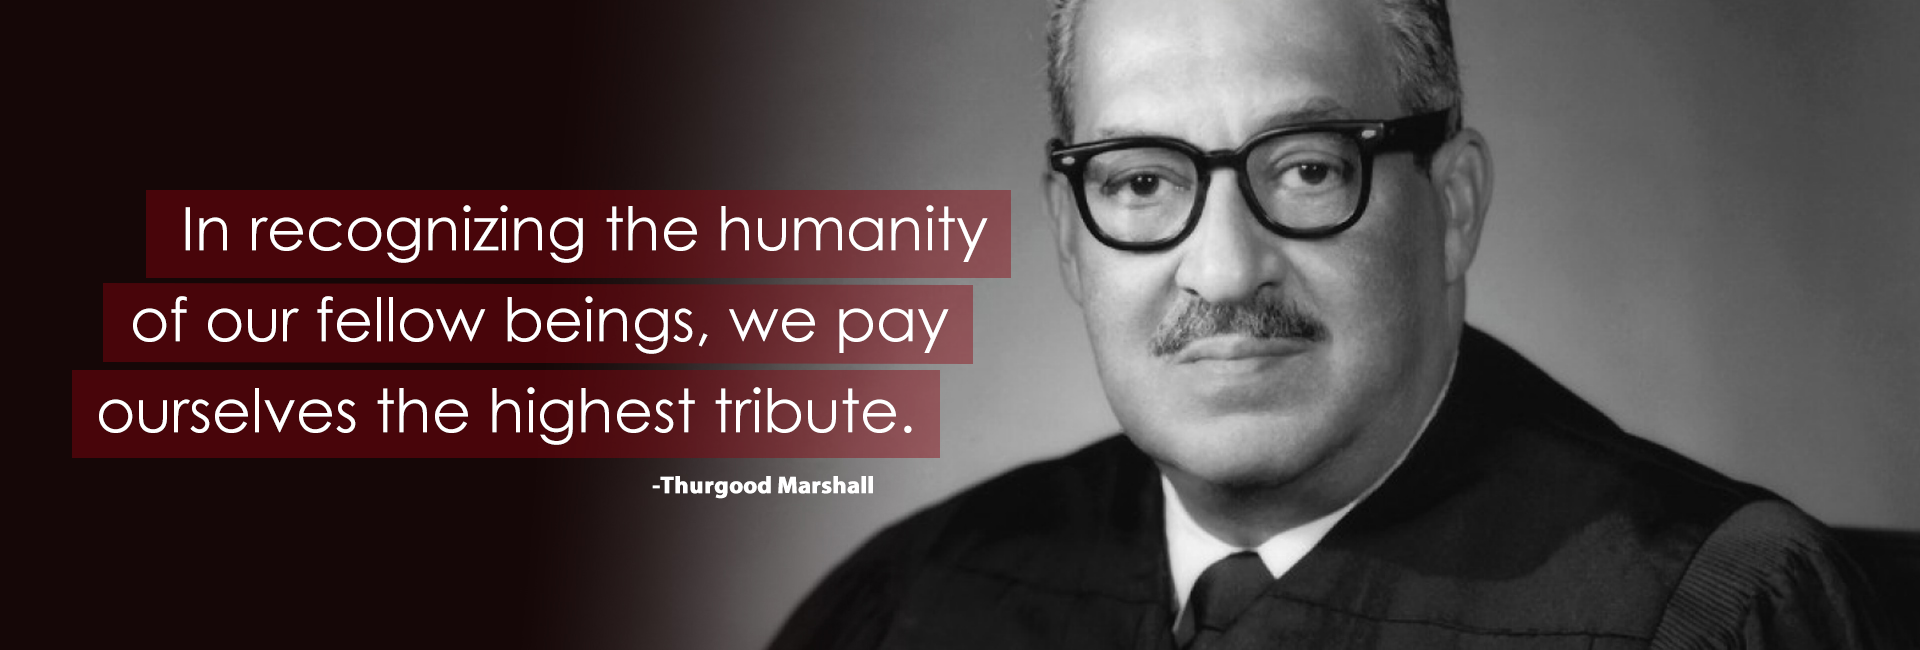 Thurgood Marshall Quotes Thurgood Marshall  Google Search  Quotes  Pinterest